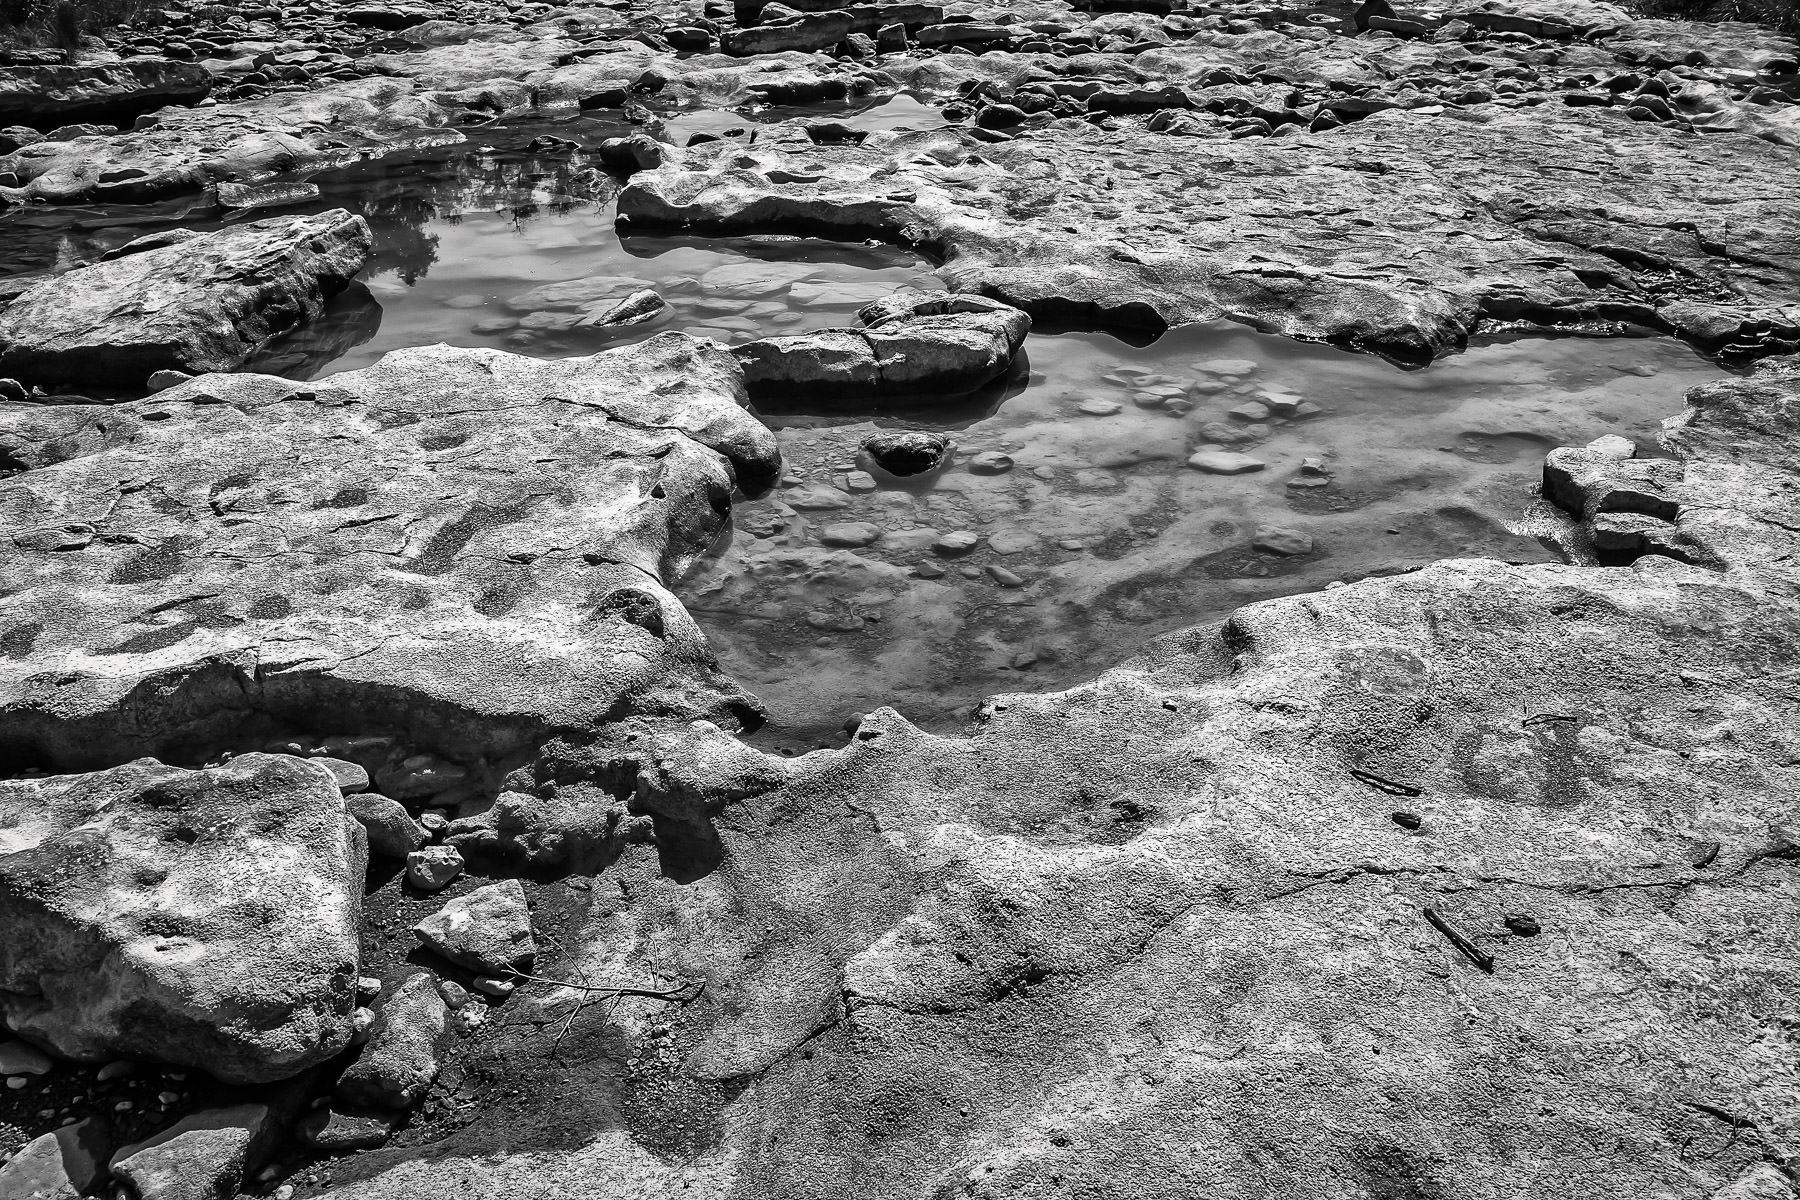 Some of what little water is left in the drought-stricken Paluxy River at Dinosaur Valley State Park, Texas.